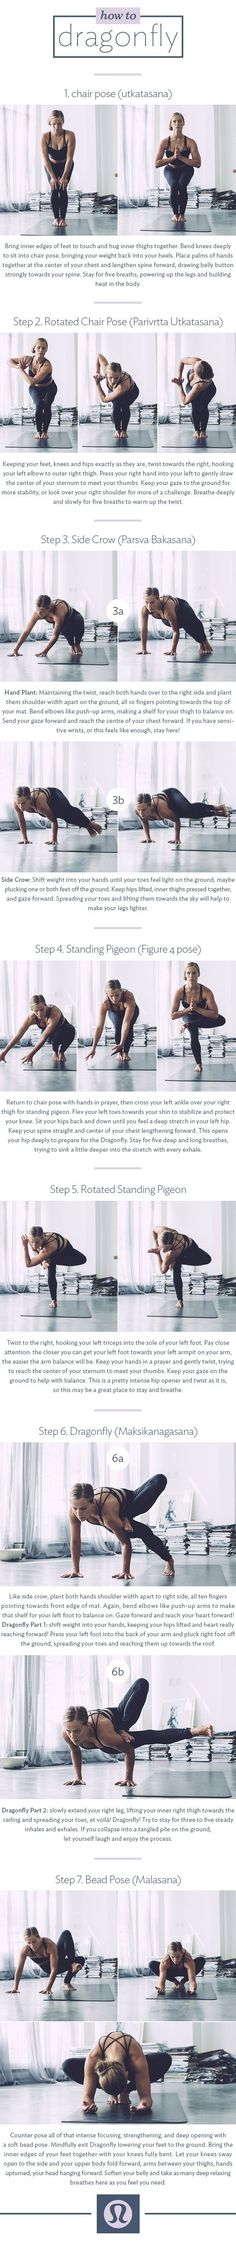 Beautiful pose. This pose is work in progress for me but I'm so close to getting it! Practice, practice, practice :)